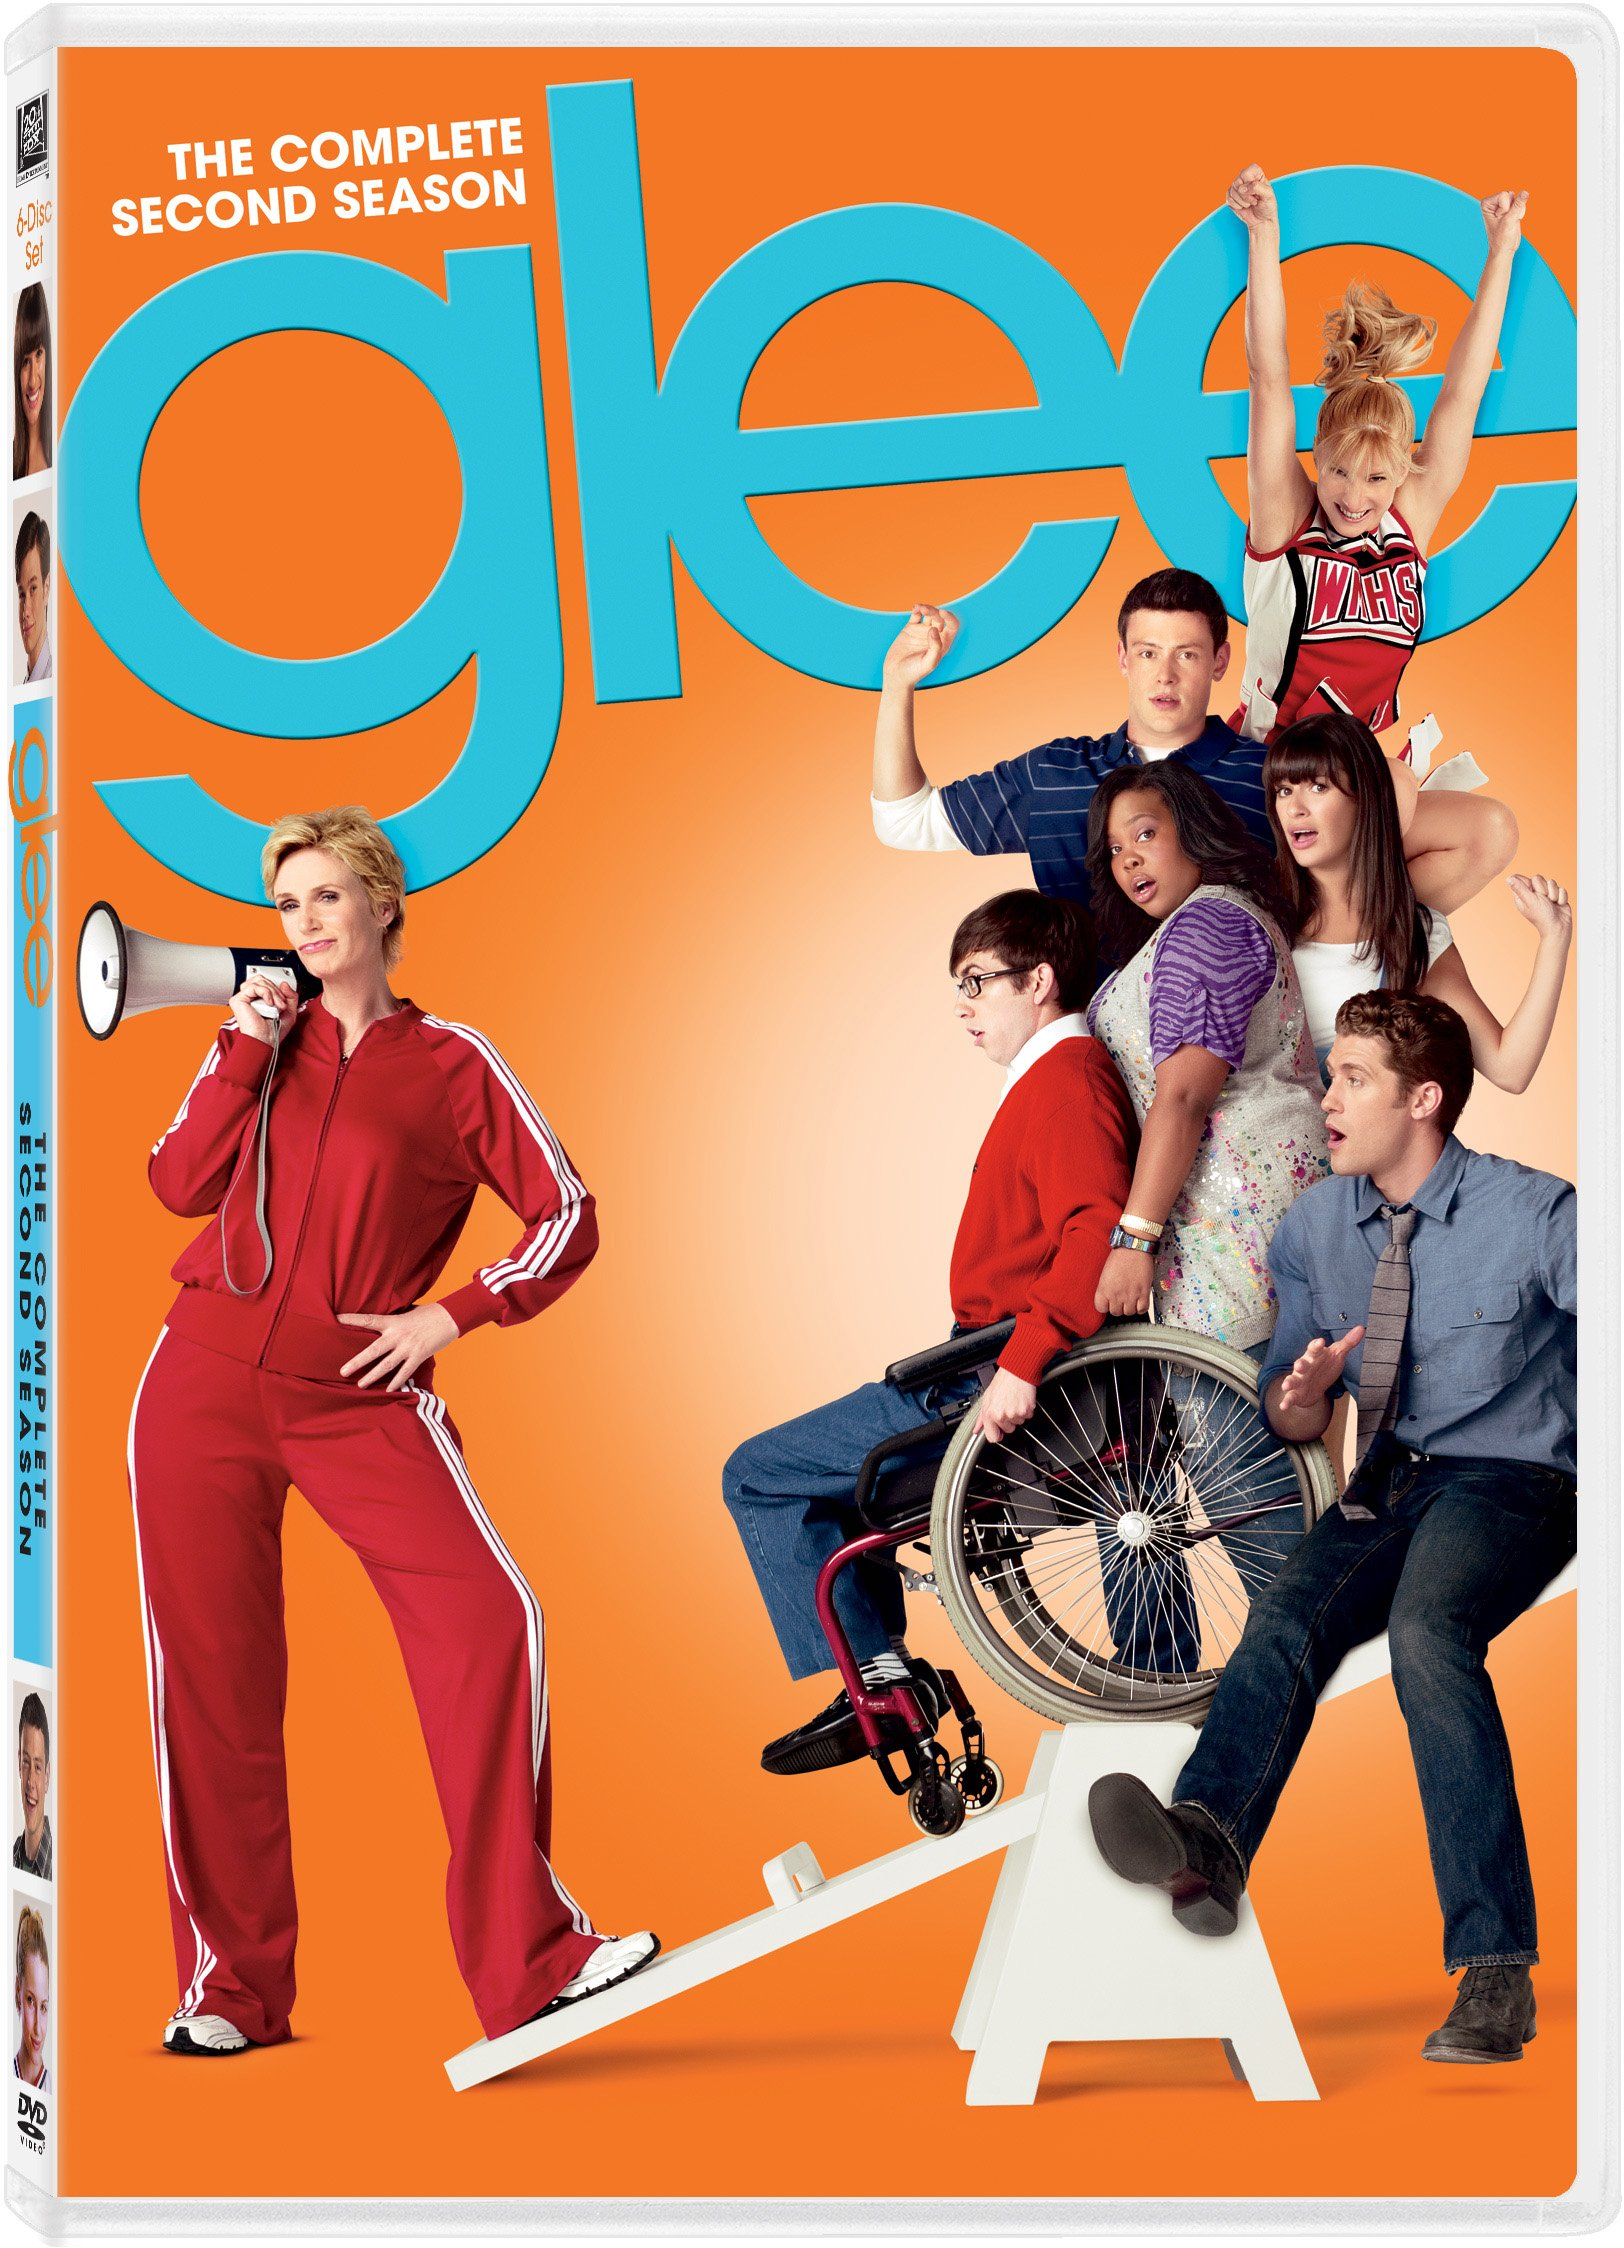 DVD : Glee: The Complete Second Season (, Dolby, AC-3, Widescreen, 6 Disc)